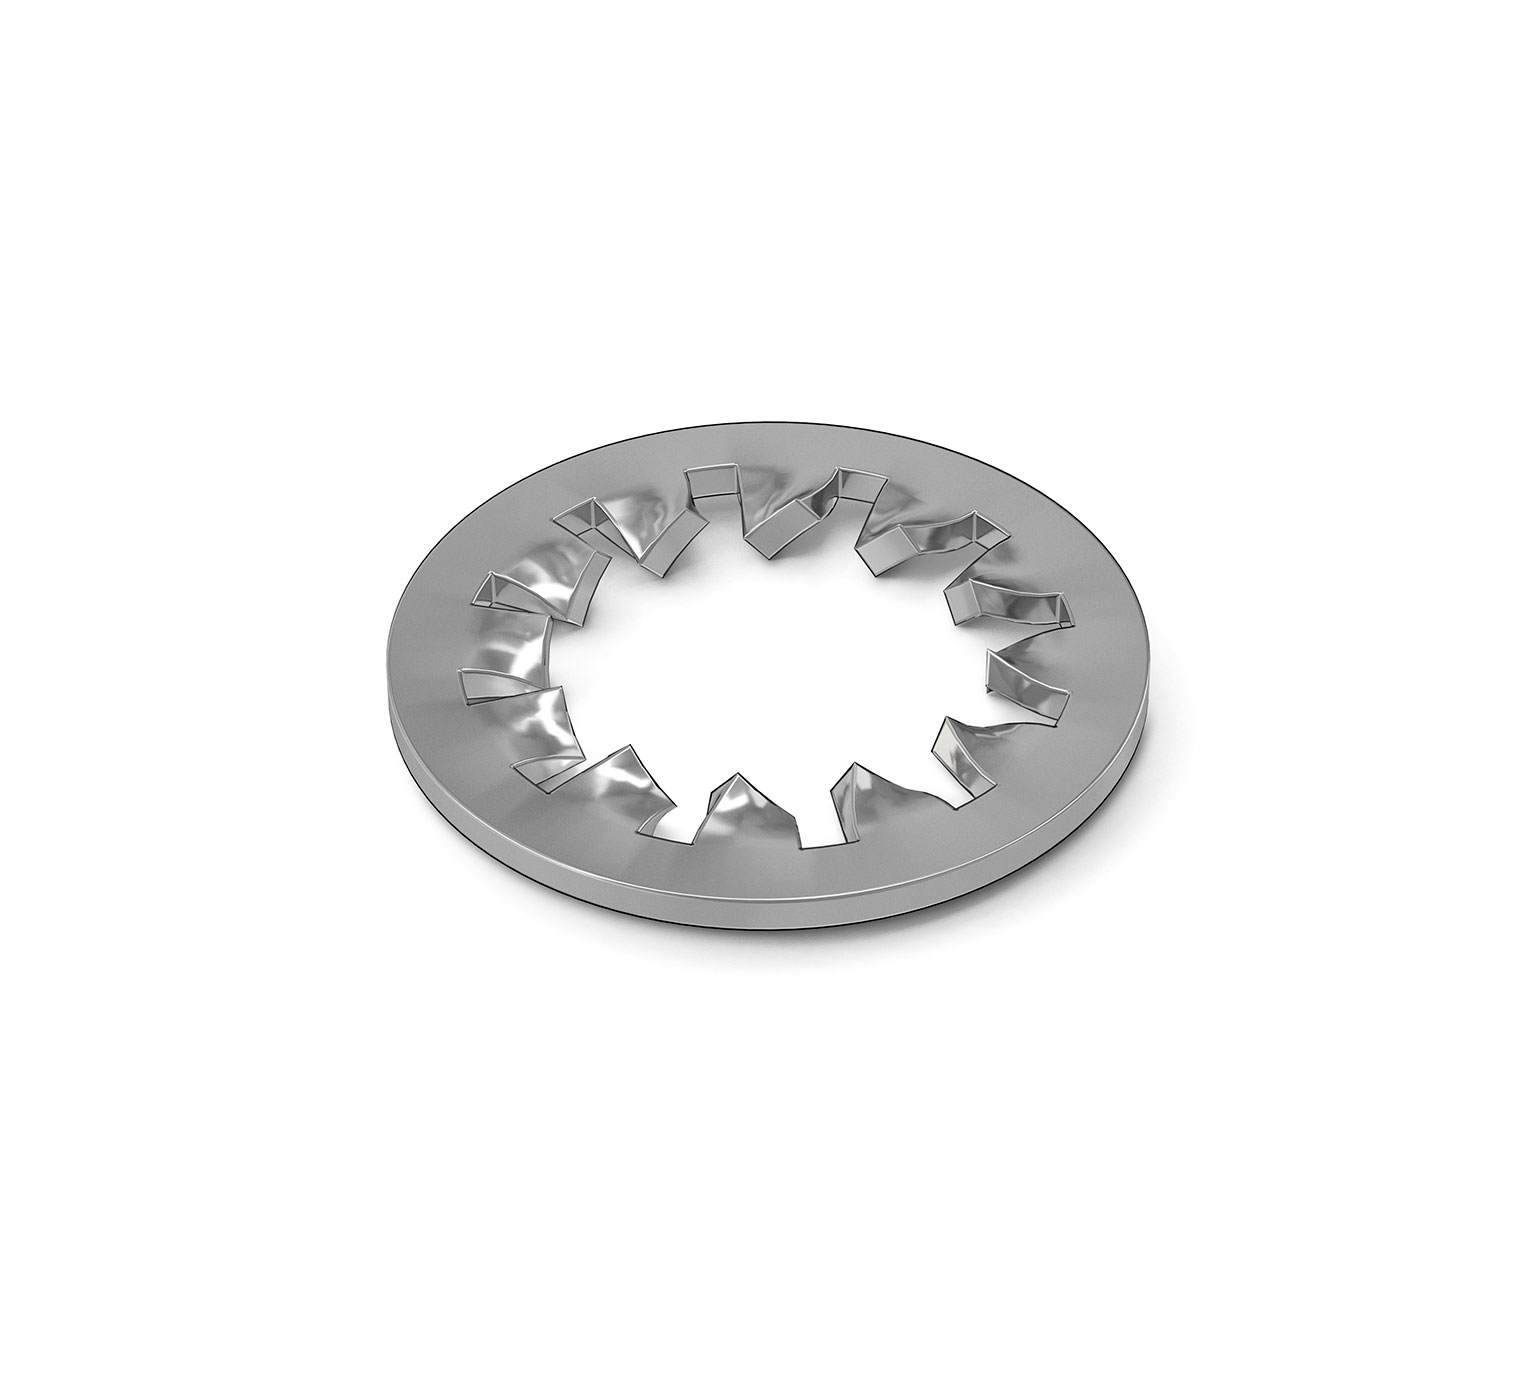 07515 Stainless Steel Lock Washer - 0.47 OD x 0.26 ID x 0.025 in alt 1